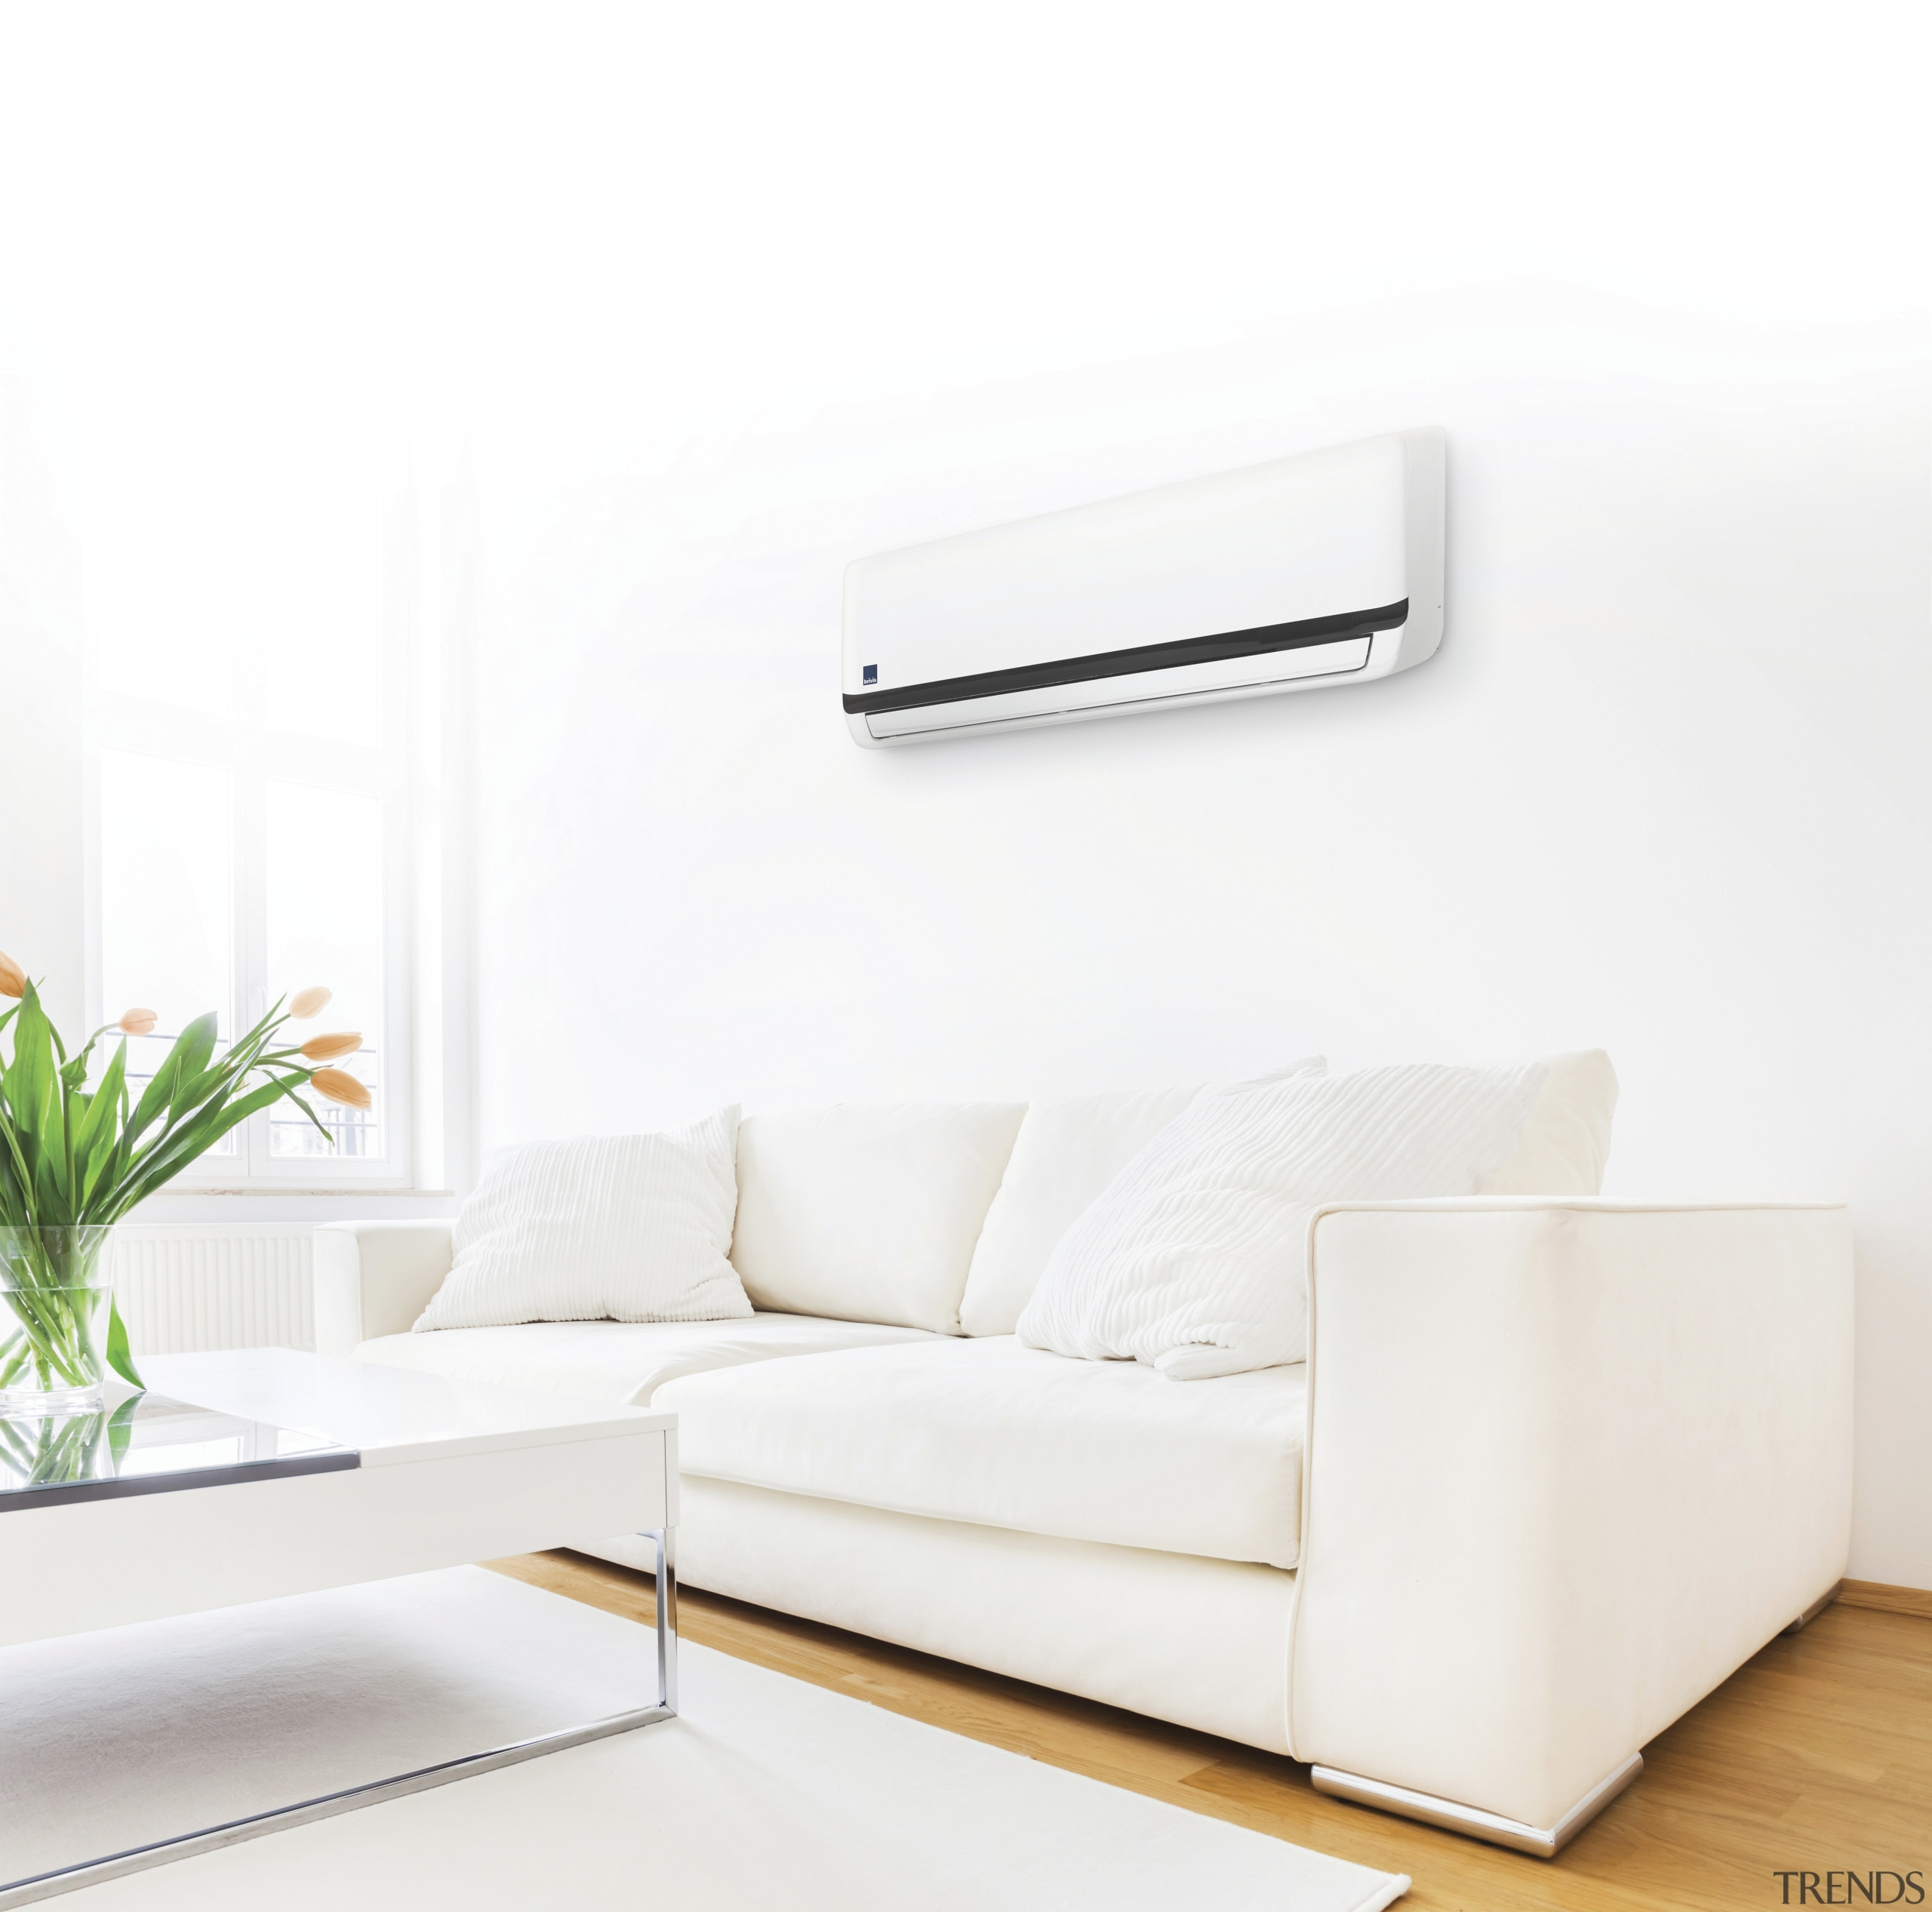 Brivis Hi-Wall Inverter Split System - Brivis Hi-Wall angle, couch, furniture, interior design, product, product design, sofa bed, table, white